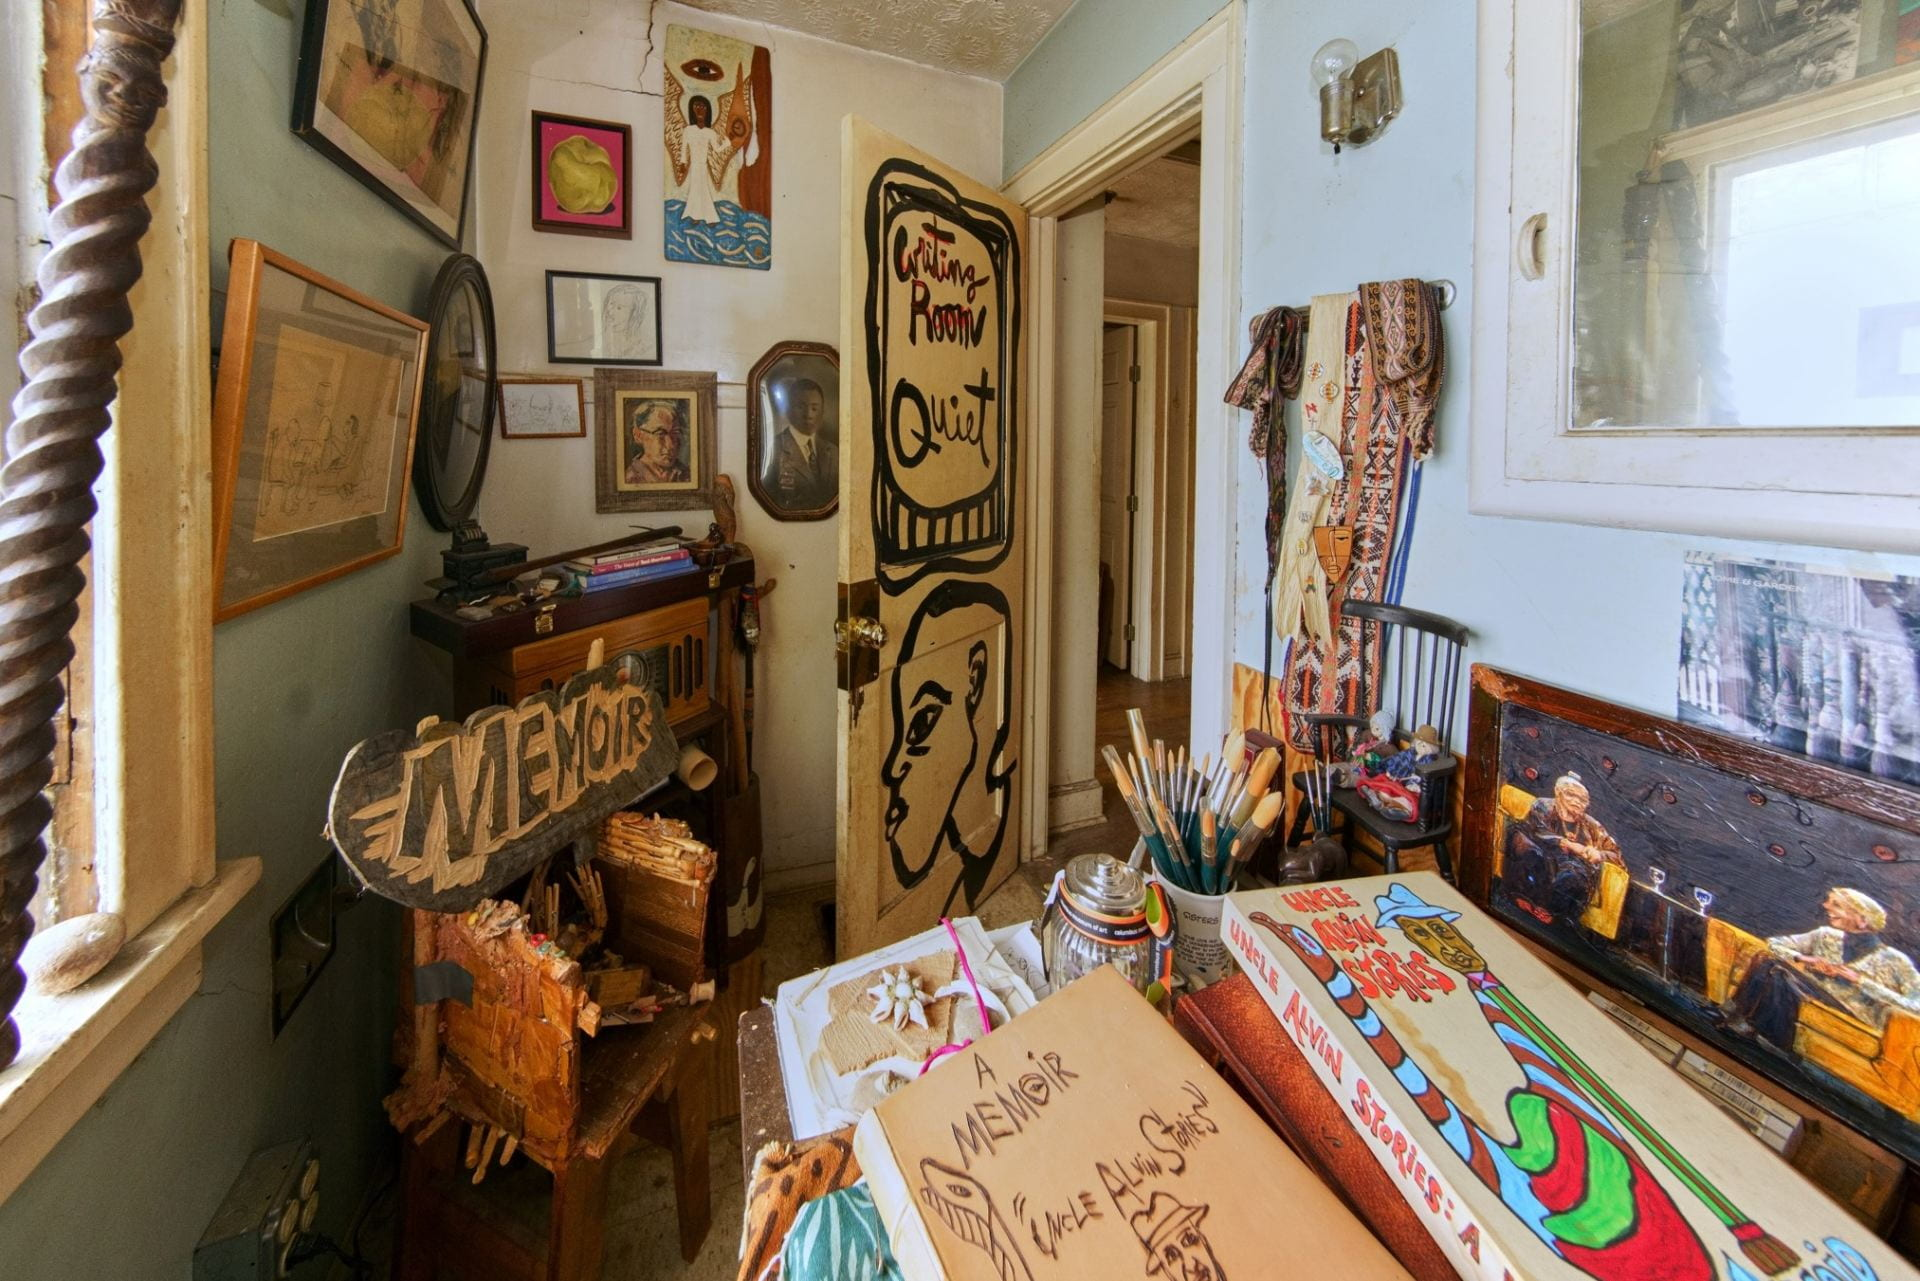 A small room with walls covered with paintings and artwork